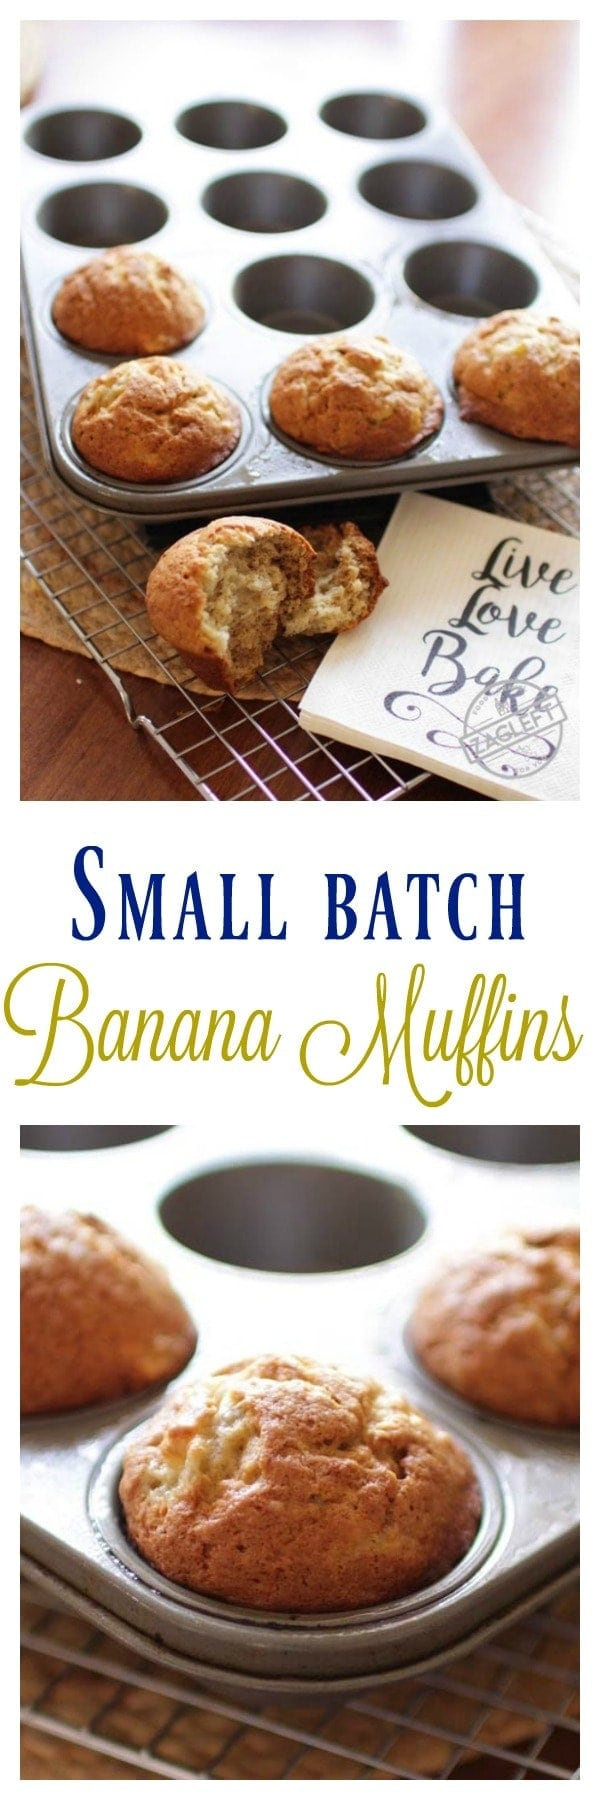 Small Batch Banana Muffins, the perfect amount if you're cooking for one or two. These tender, sweet muffins are perfect for breakfast, snacking or dessert. MAKES 5-6 BANANA MUFFINS | One Dish Kitchen.